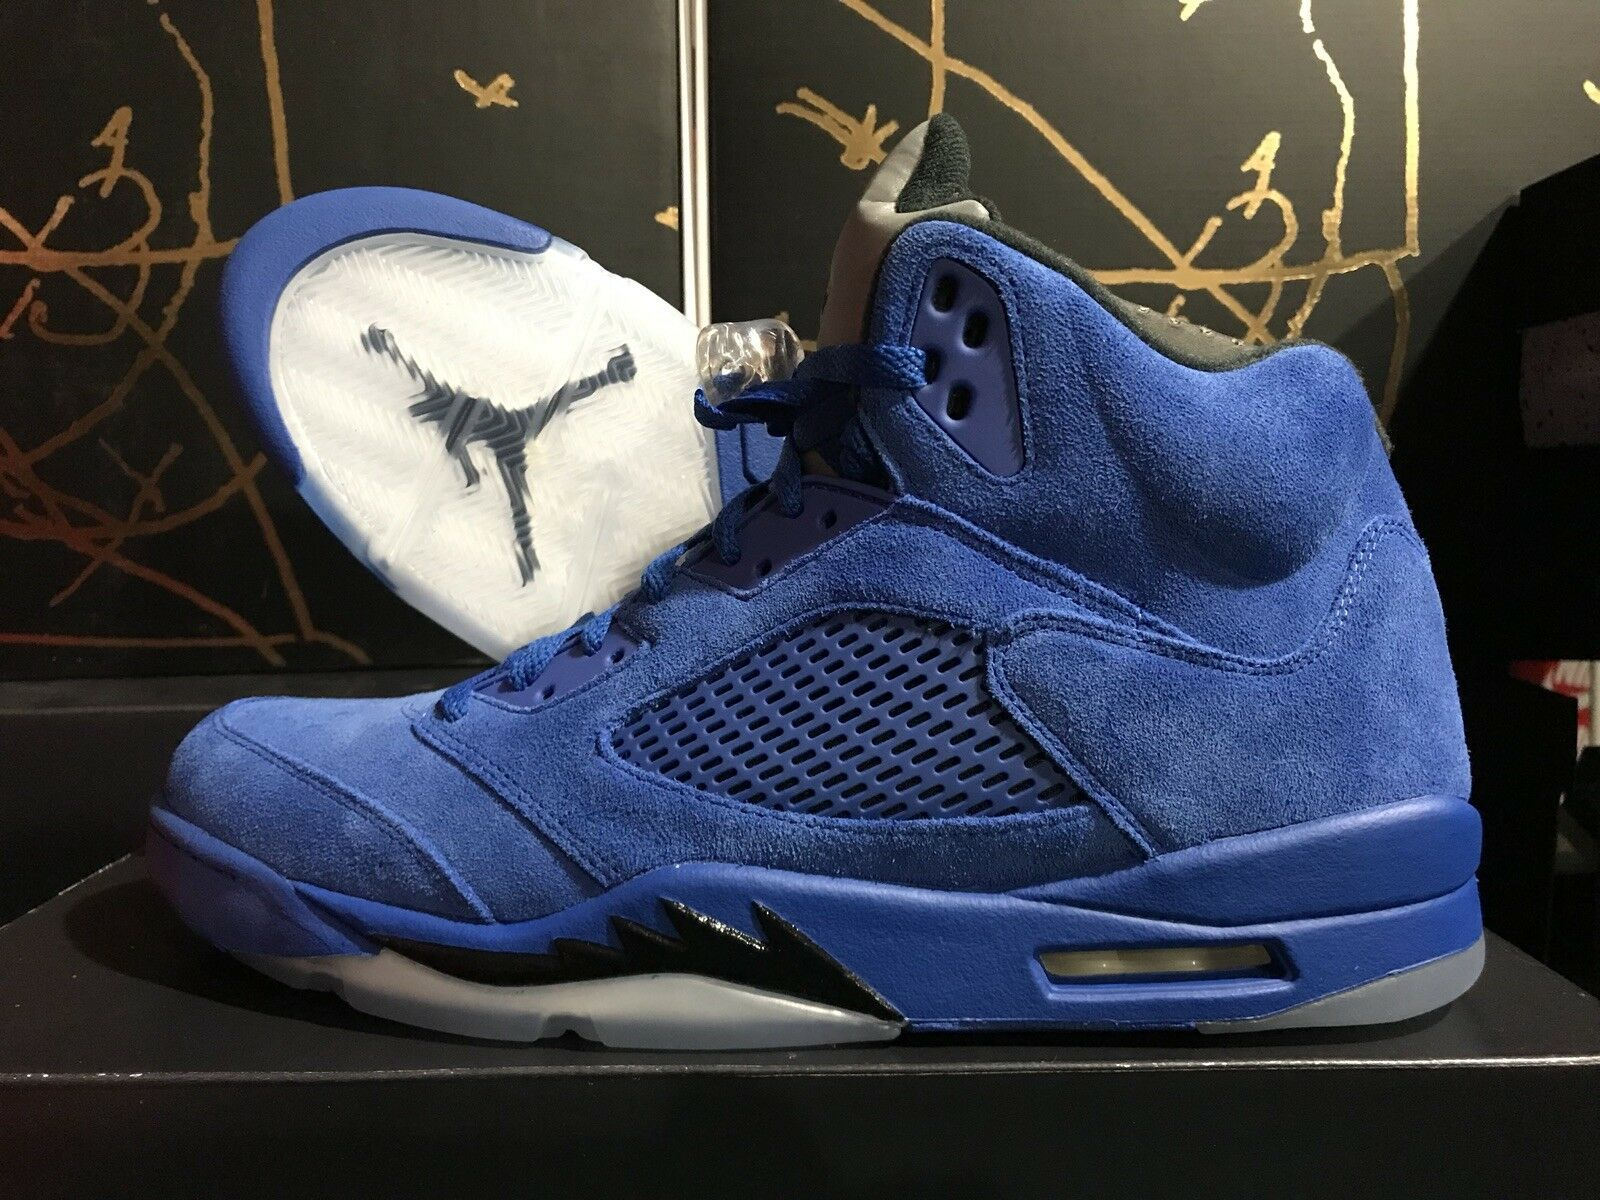 31102933736c6 AIR JORDAN 5 V RETRO 136027-401 blueE SUEDE SUEDE SUEDE GAME ROYAL BLACK DS  ...